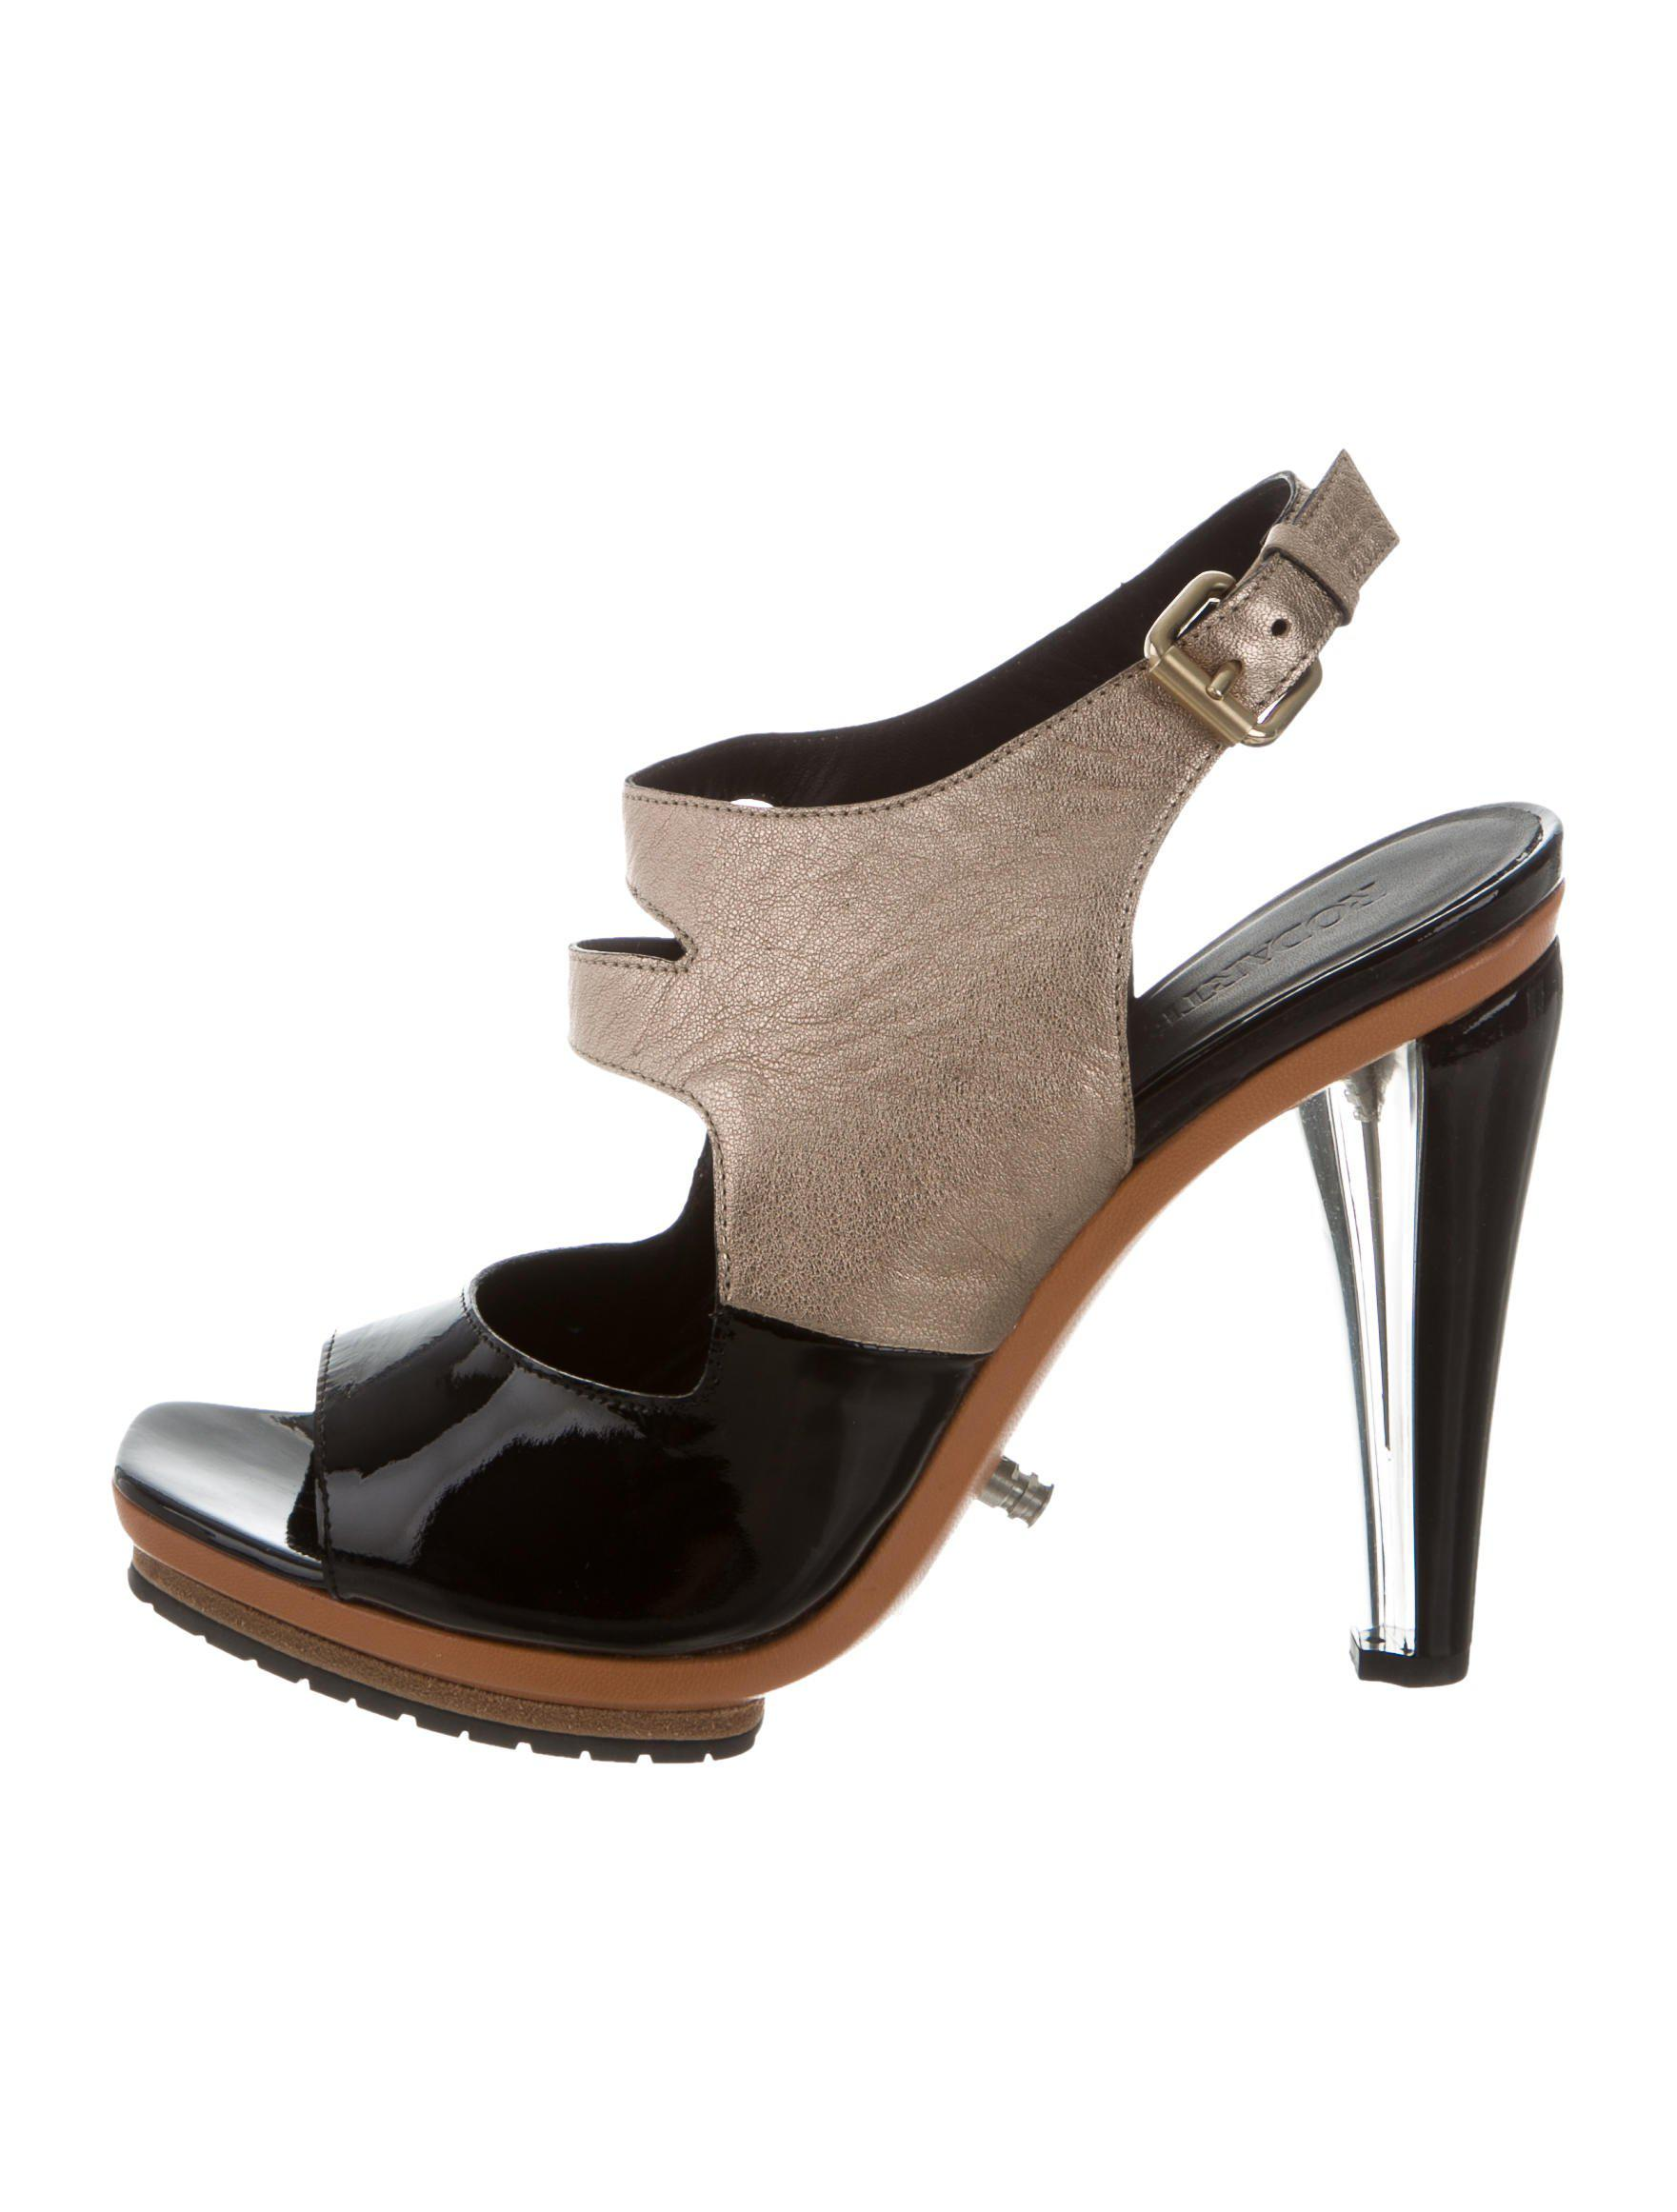 Rodarte Leather Slingback Wedges w/ Tags extremely for sale bT8Ymx